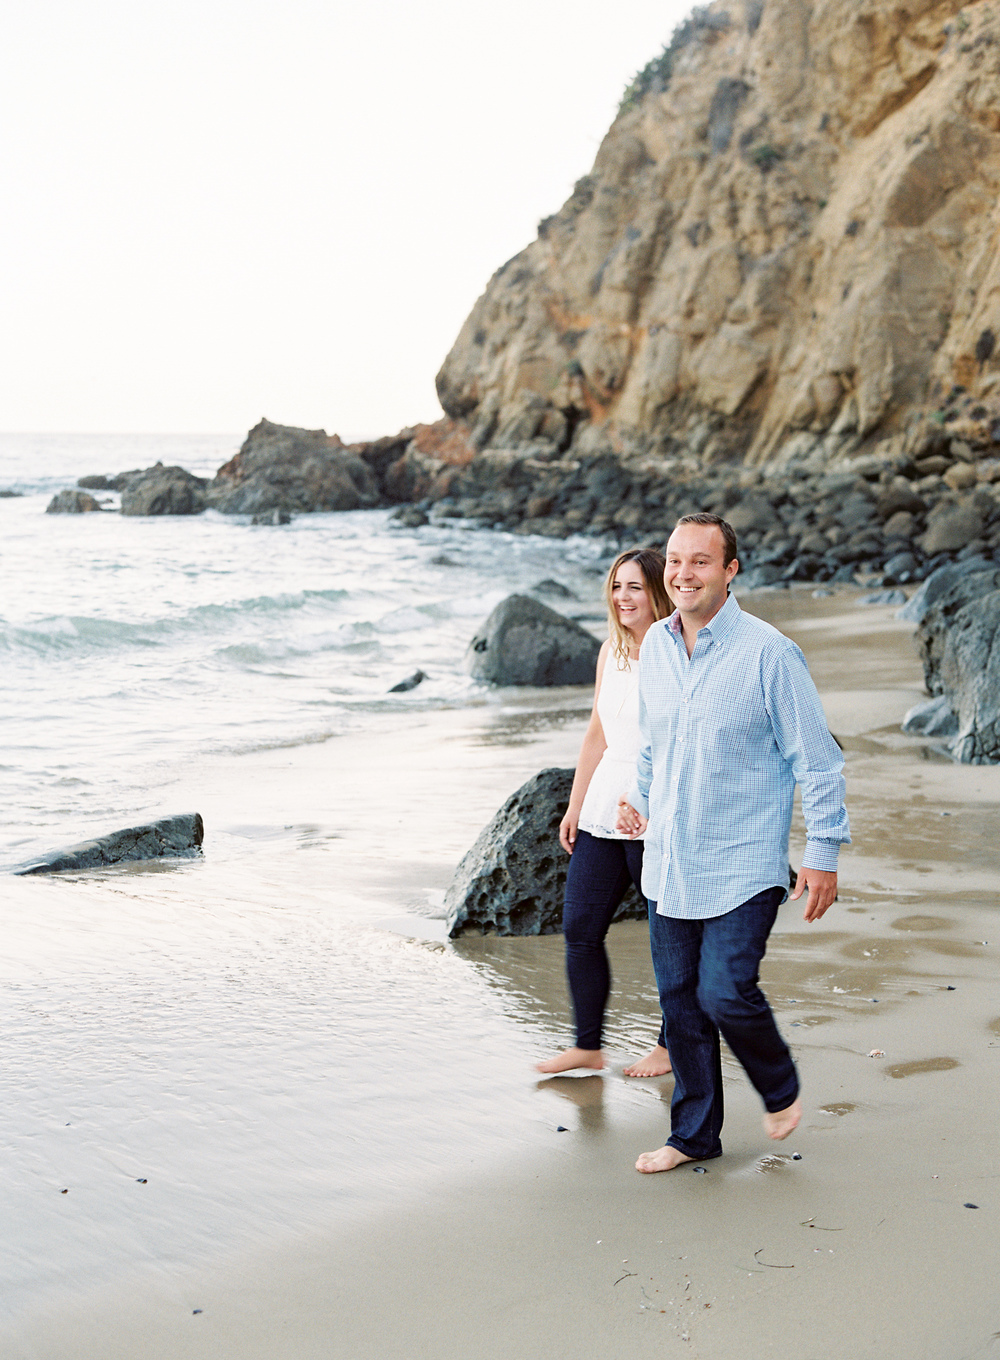 Laguna-Beach-Engagement-Film-Wedding-Orange-County-39.jpg